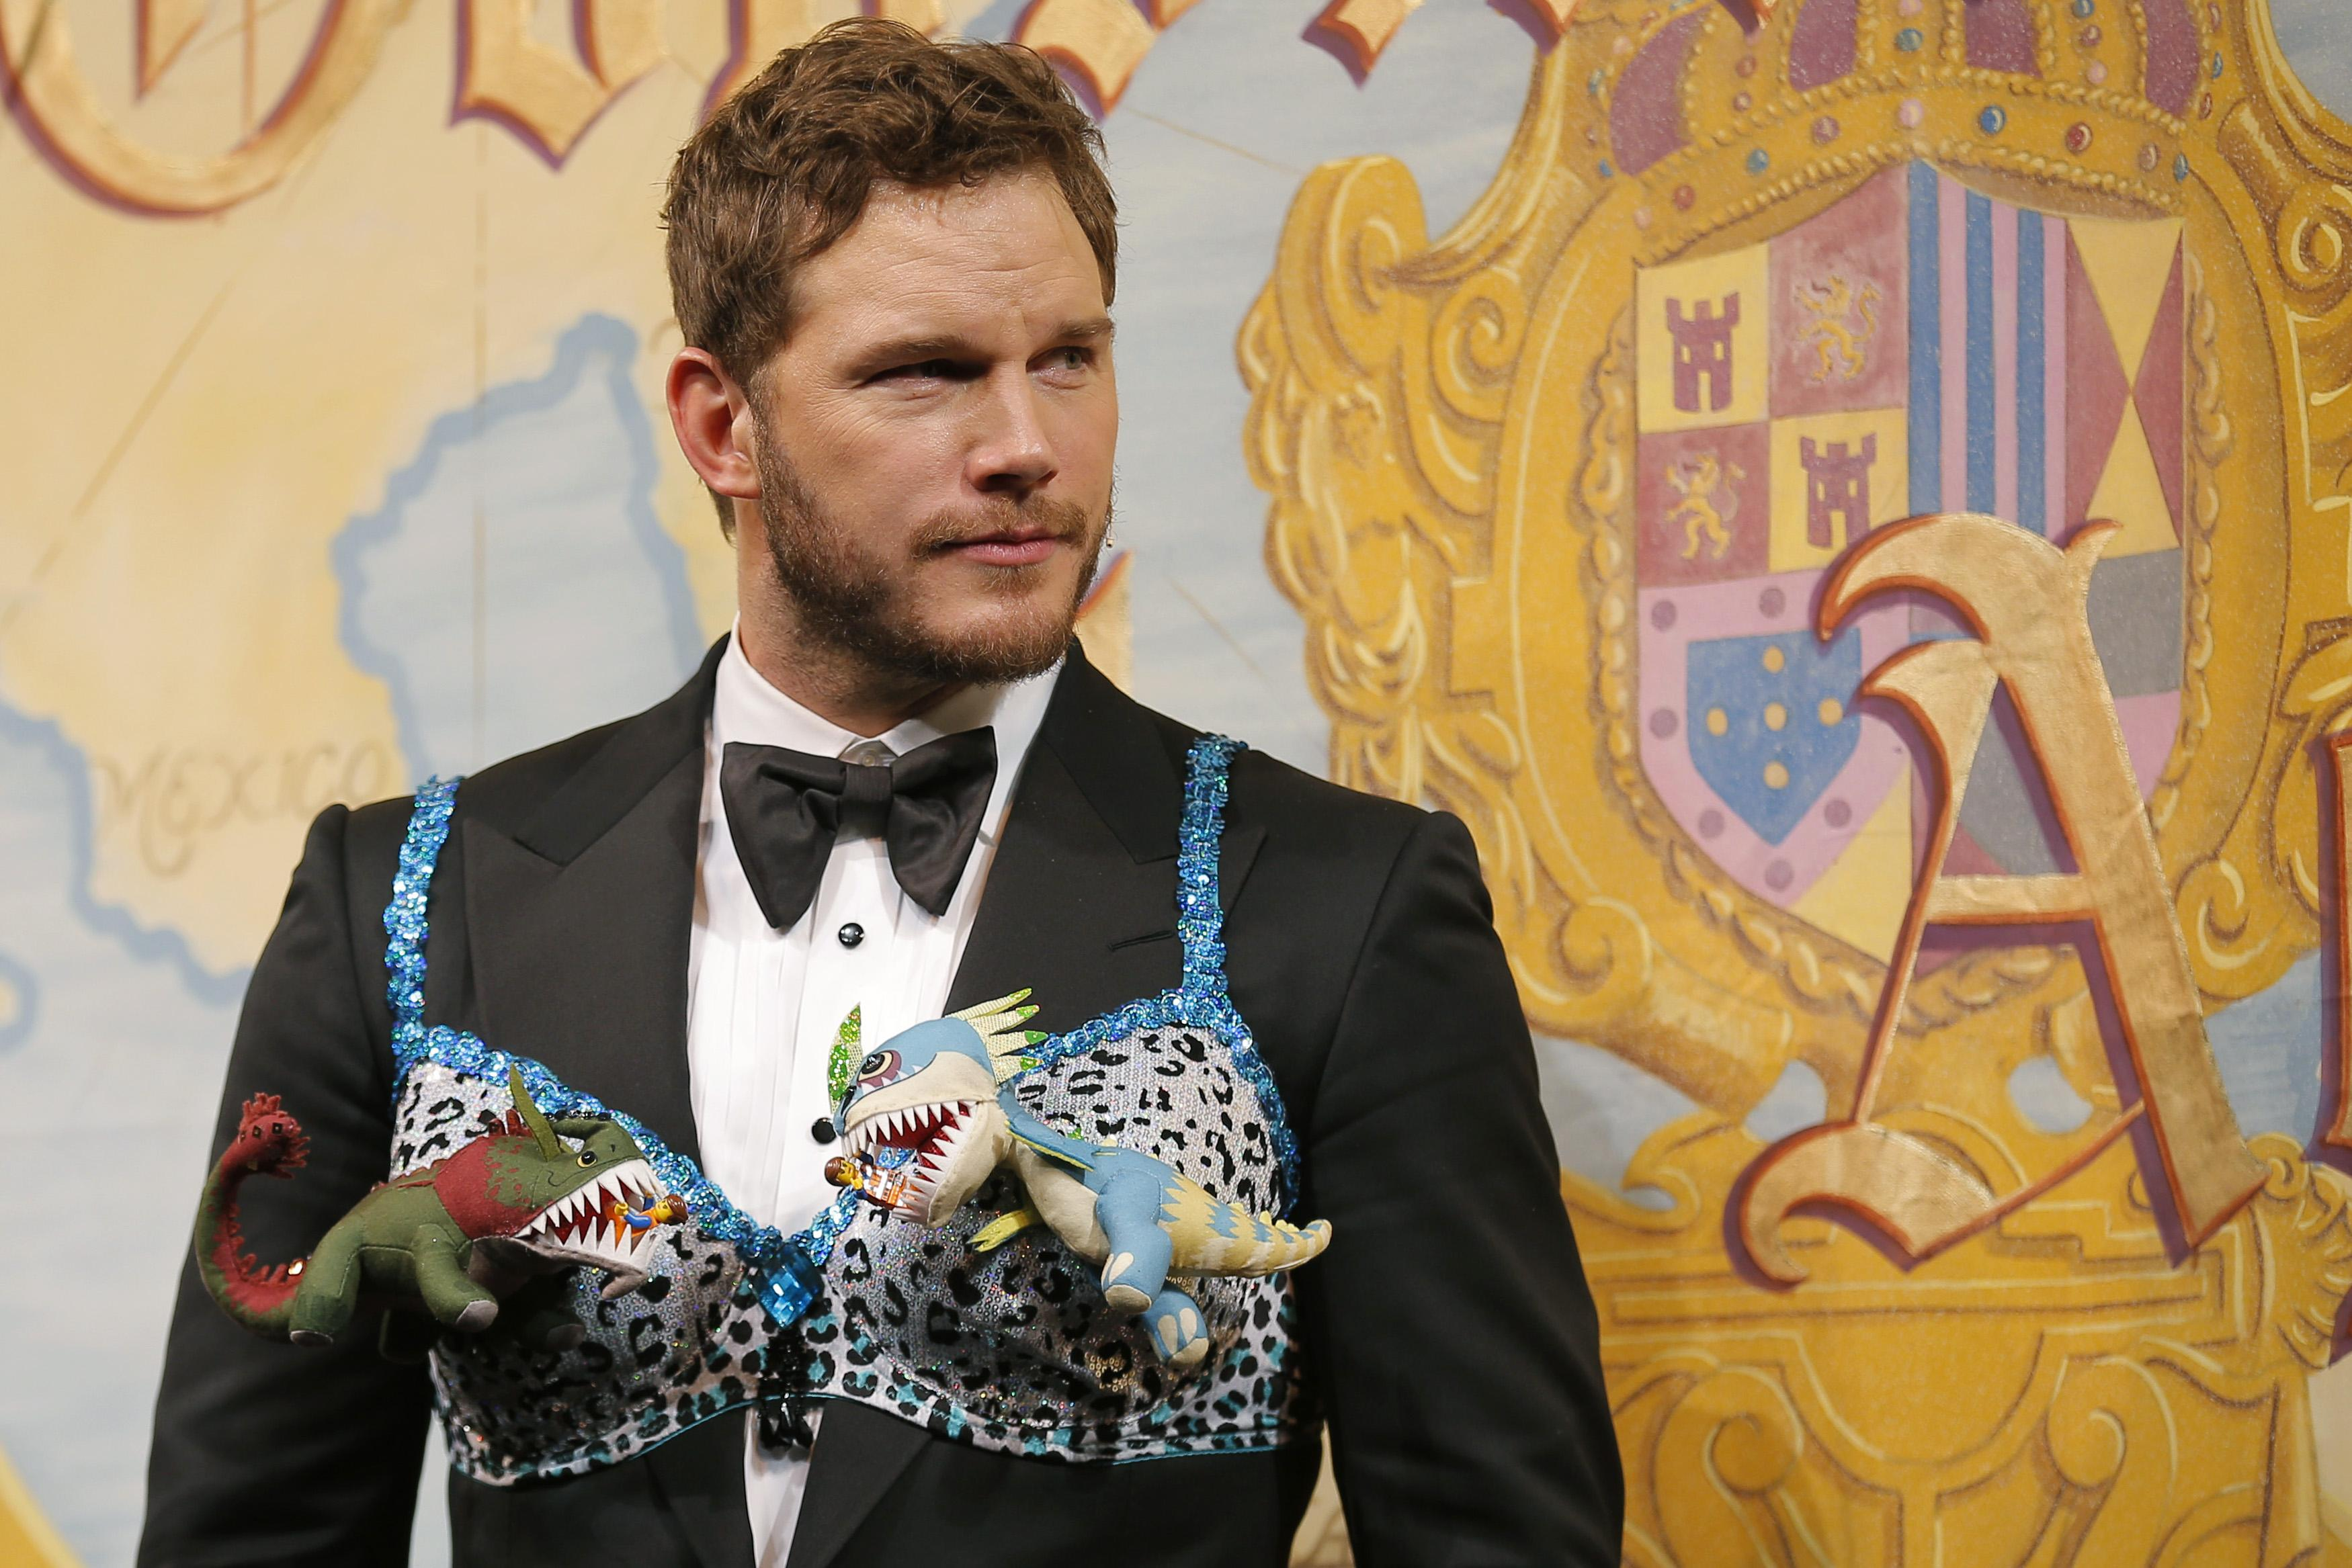 Actor Chris Pratt wears a bra decorated with stuffed animals as Pratt is roasted and honored as Hasty Pudding Theatricals' Man of the Year at Harvard University in Cambridge, Massachusetts February 6, 2015. REUTERS/Brian Snyder (UNITED STATES - Tags: ENTERTAINMENT)